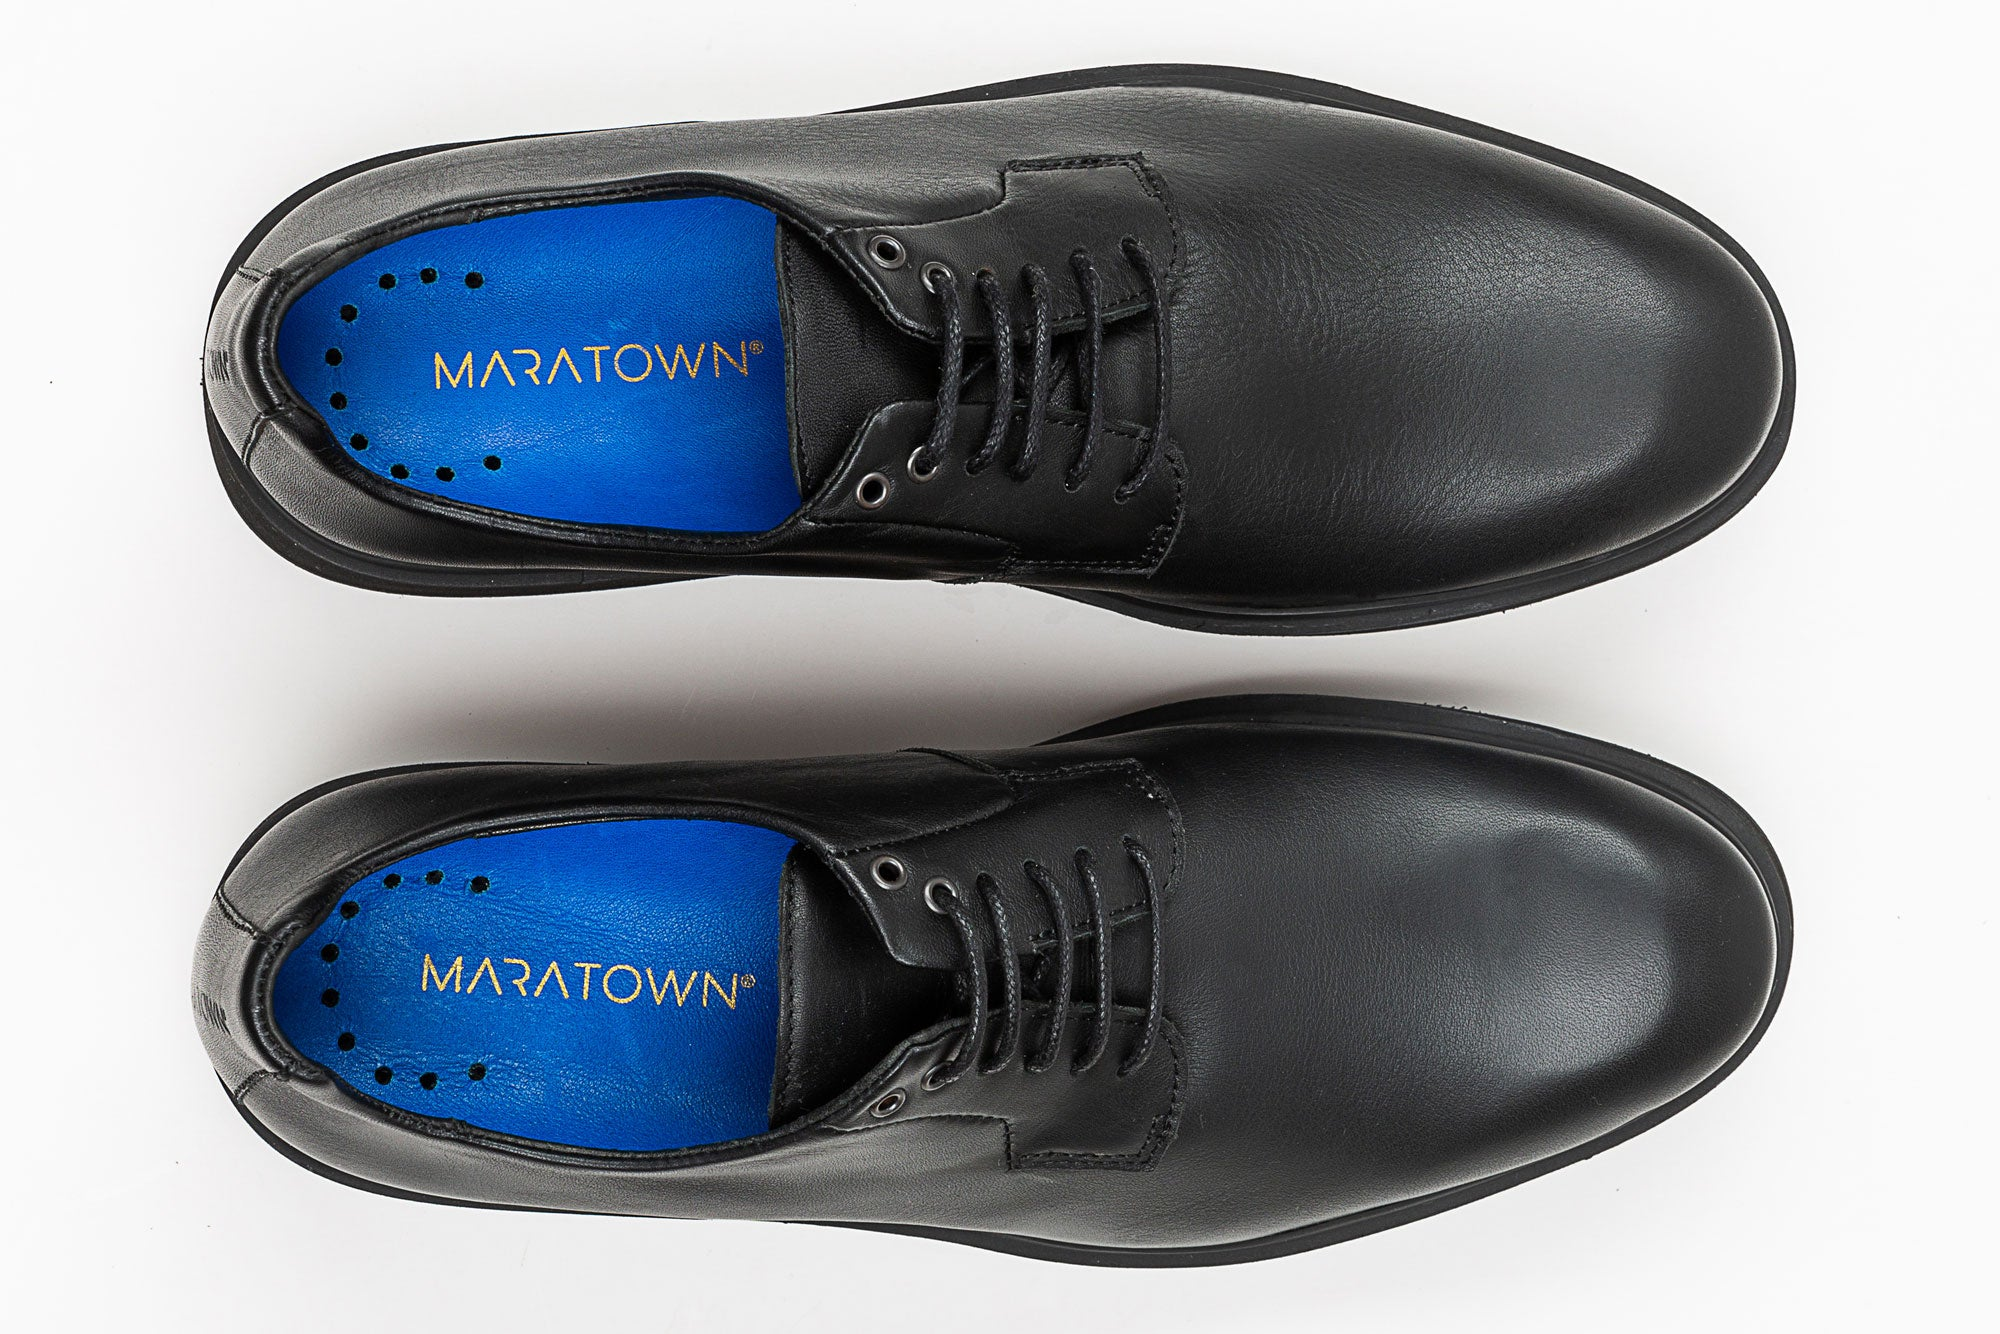 84dcf74467c ... Most Comfortable Mens Dress Shoes For Work - MARATOWN - super cushioned  sole - most comfortable ...